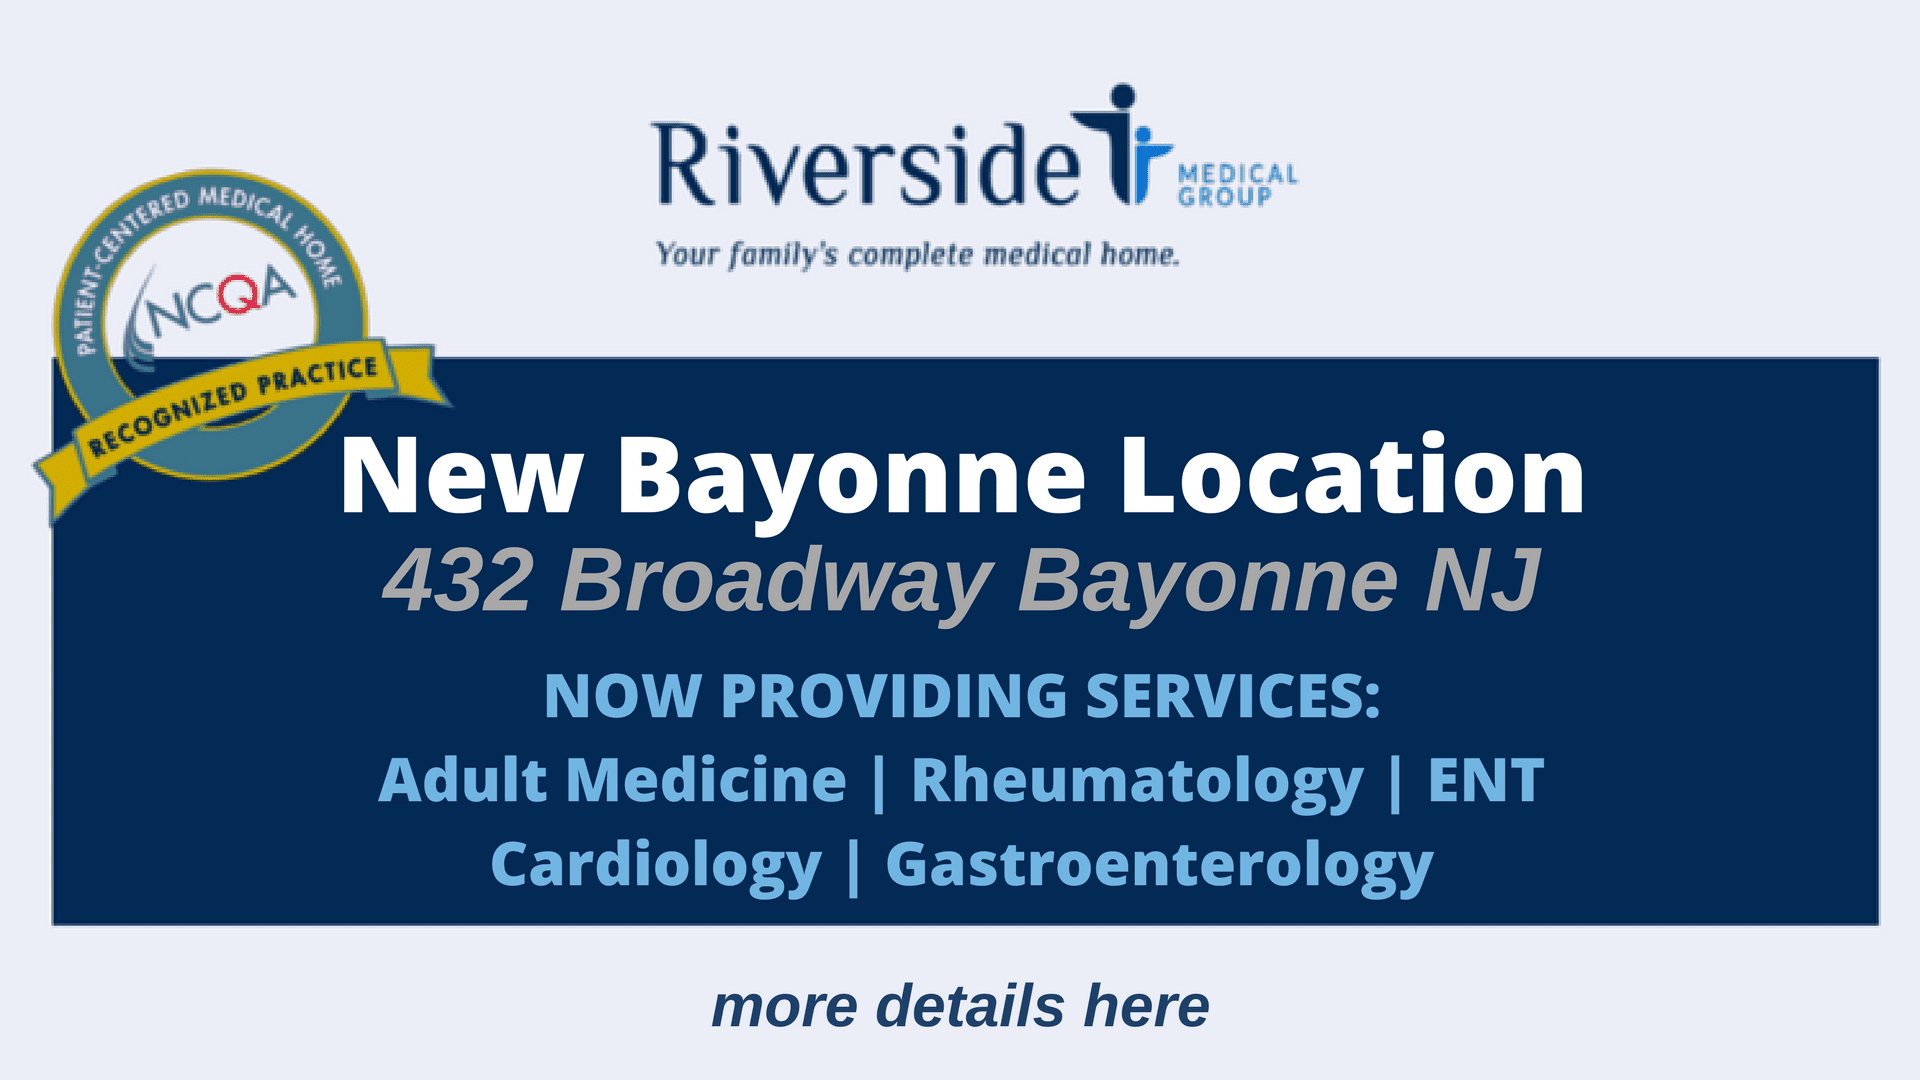 New Bayonne Location Now Open